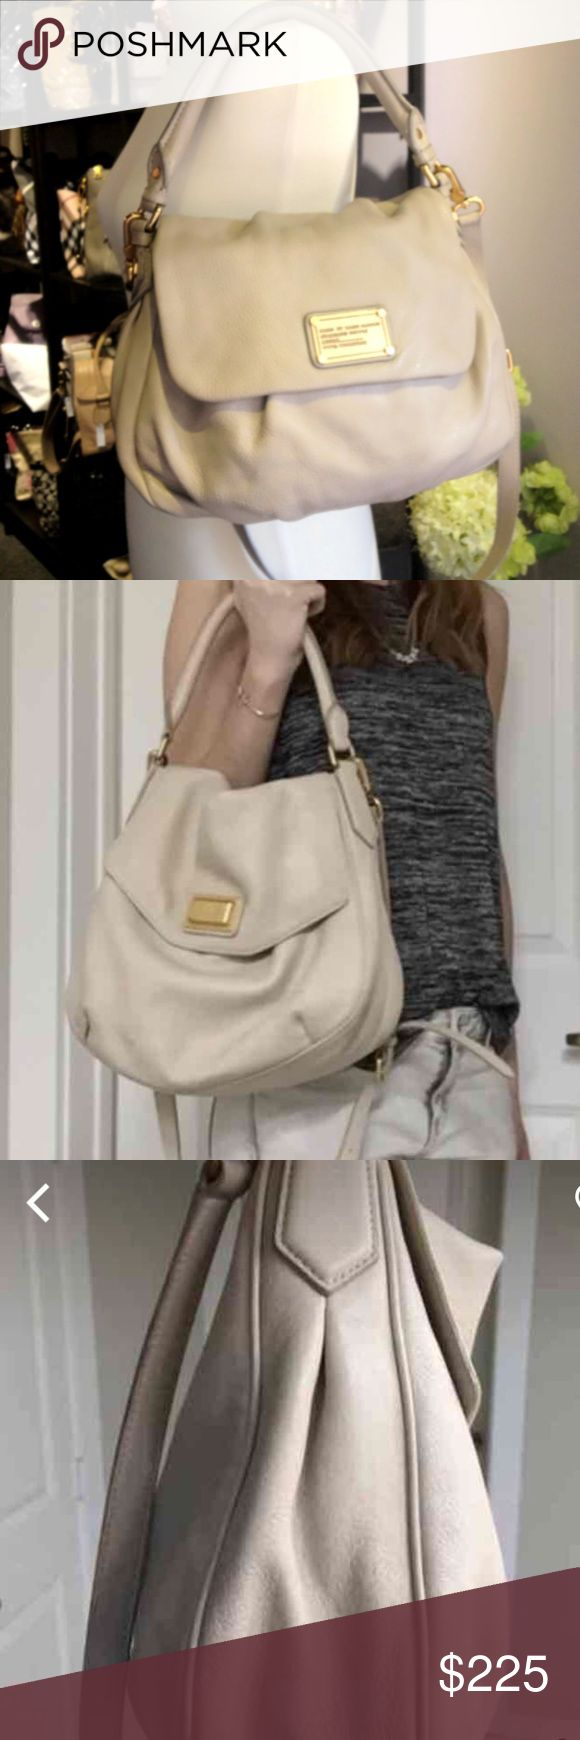 MBMJ leather bag Preloved but in great condition except for a couple of pen marks inside. Light stone/cement color. Perfect for summer. First  pic is a stock pic for exposure. Last pics are actual bag. Will ship with detachable strap Marc by Marc Jacobs Bags Crossbody Bags